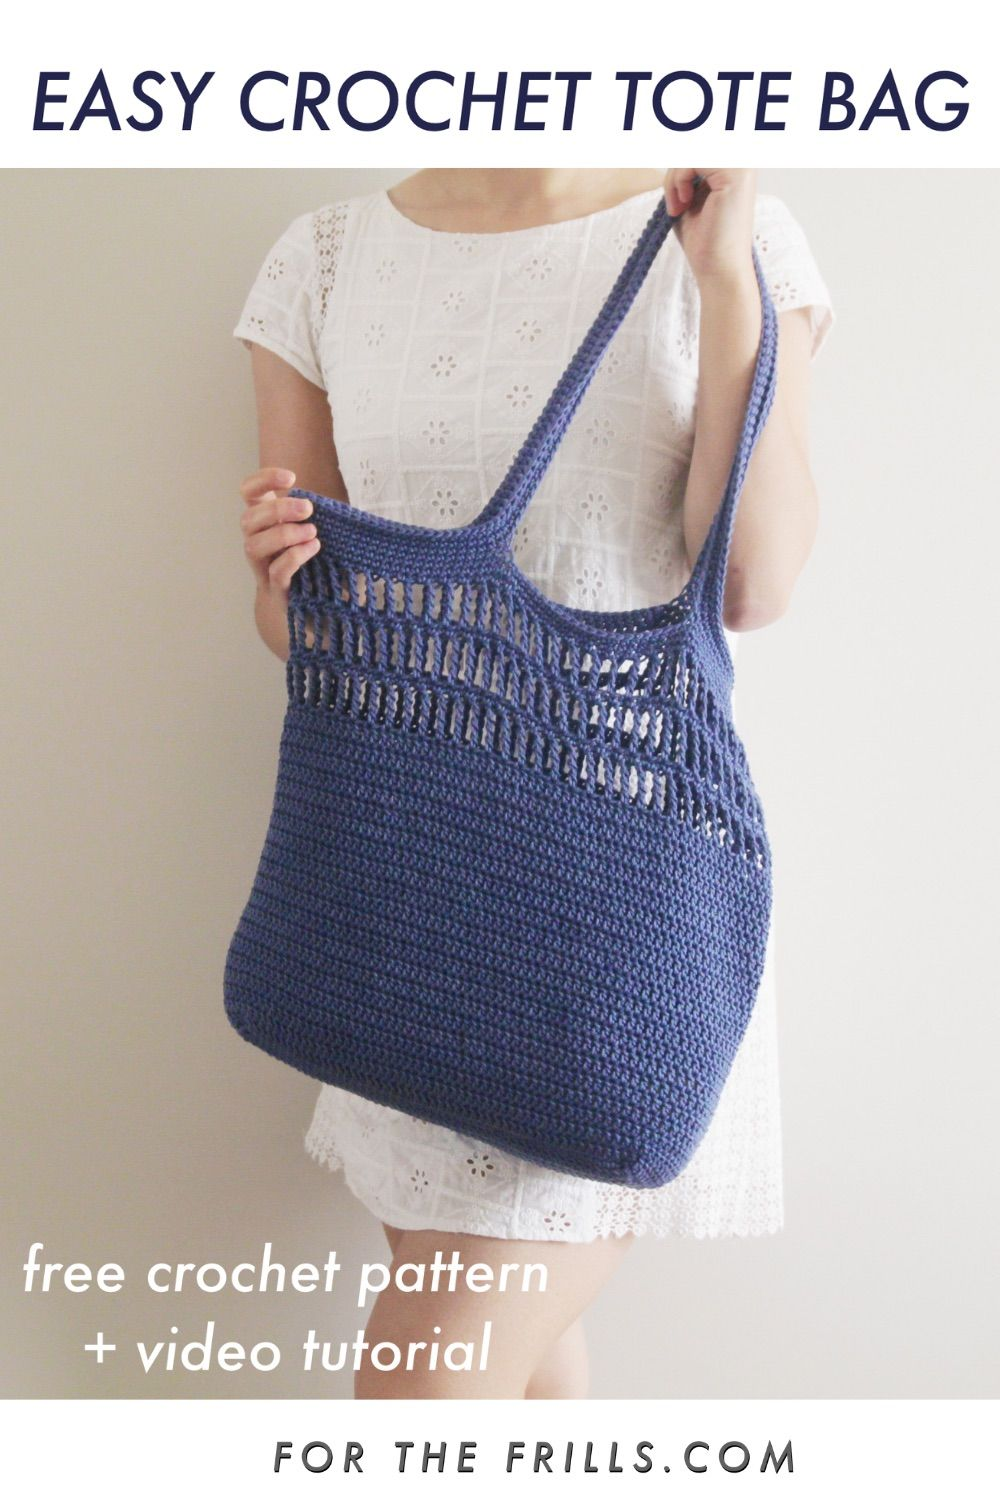 Easy Crochet Summer Tote Bag - patrón de ganchillo gratis + video tutorial